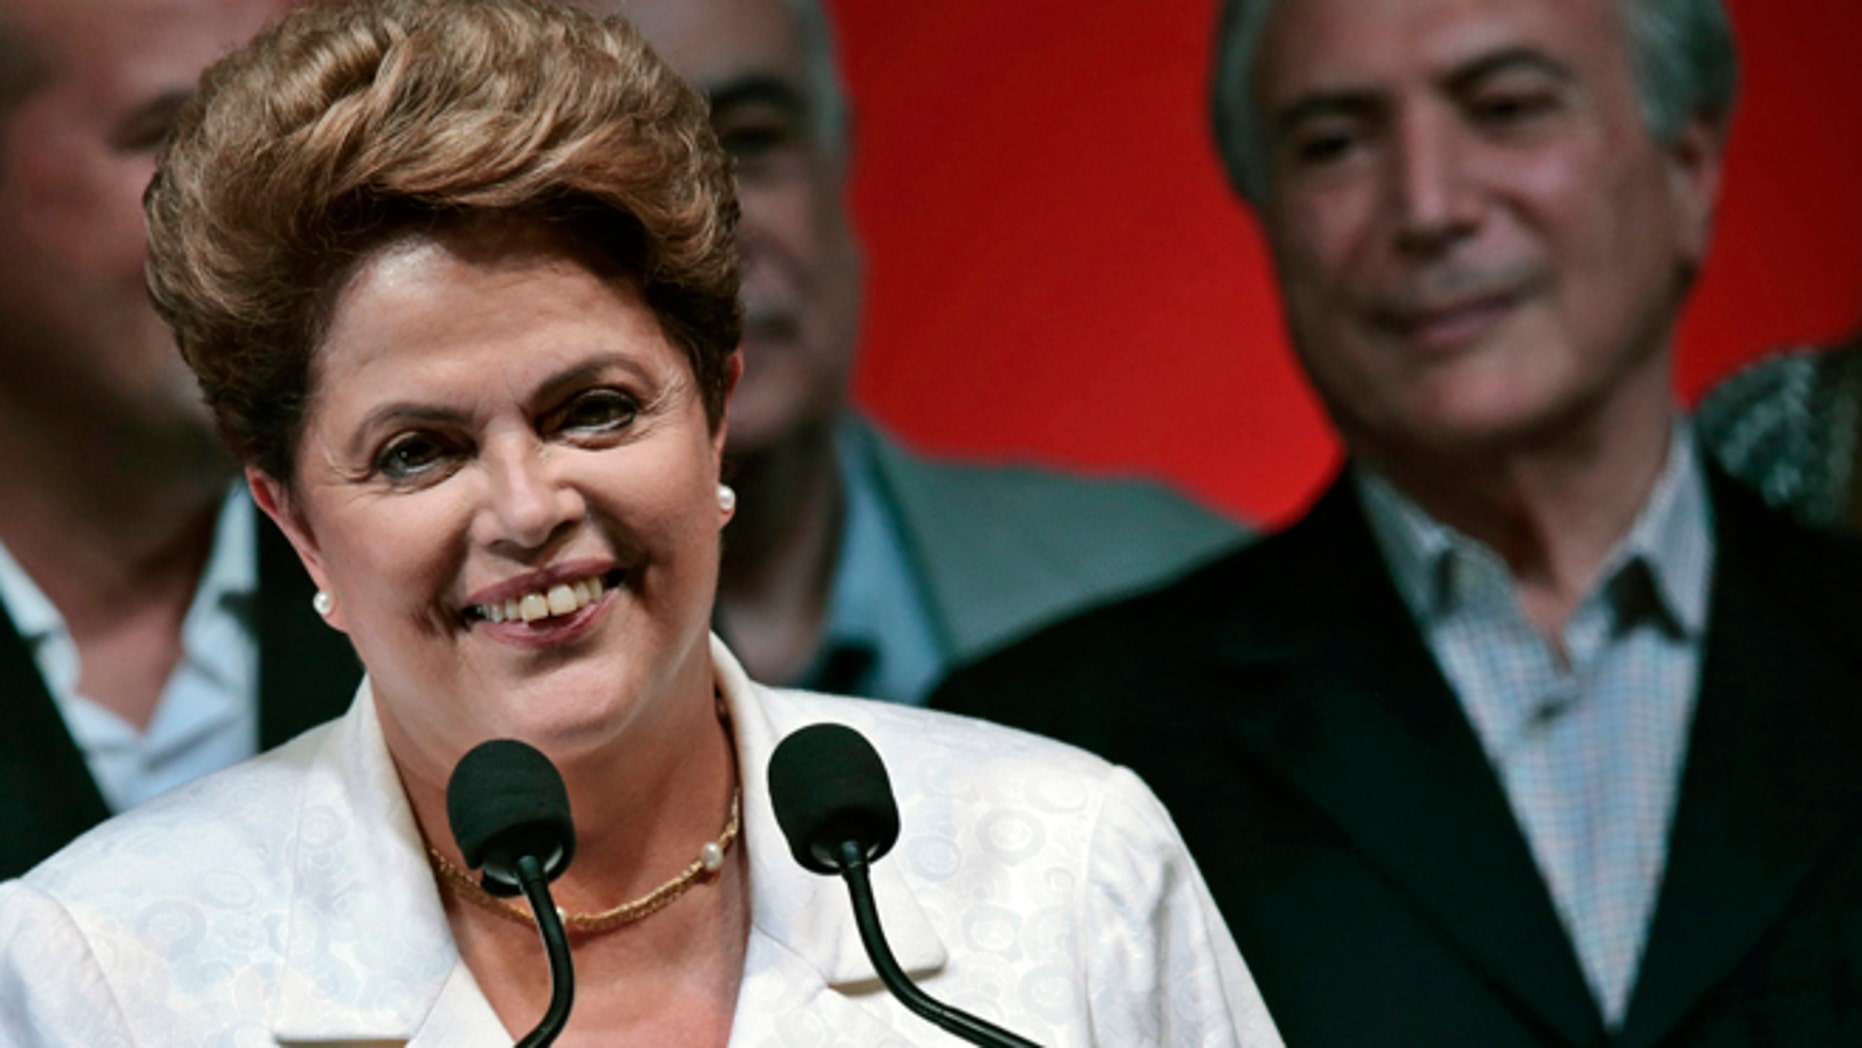 Oct. 26: Dilma Rousseff smiles during news conference after disclosure of the election results, in Brasilia.